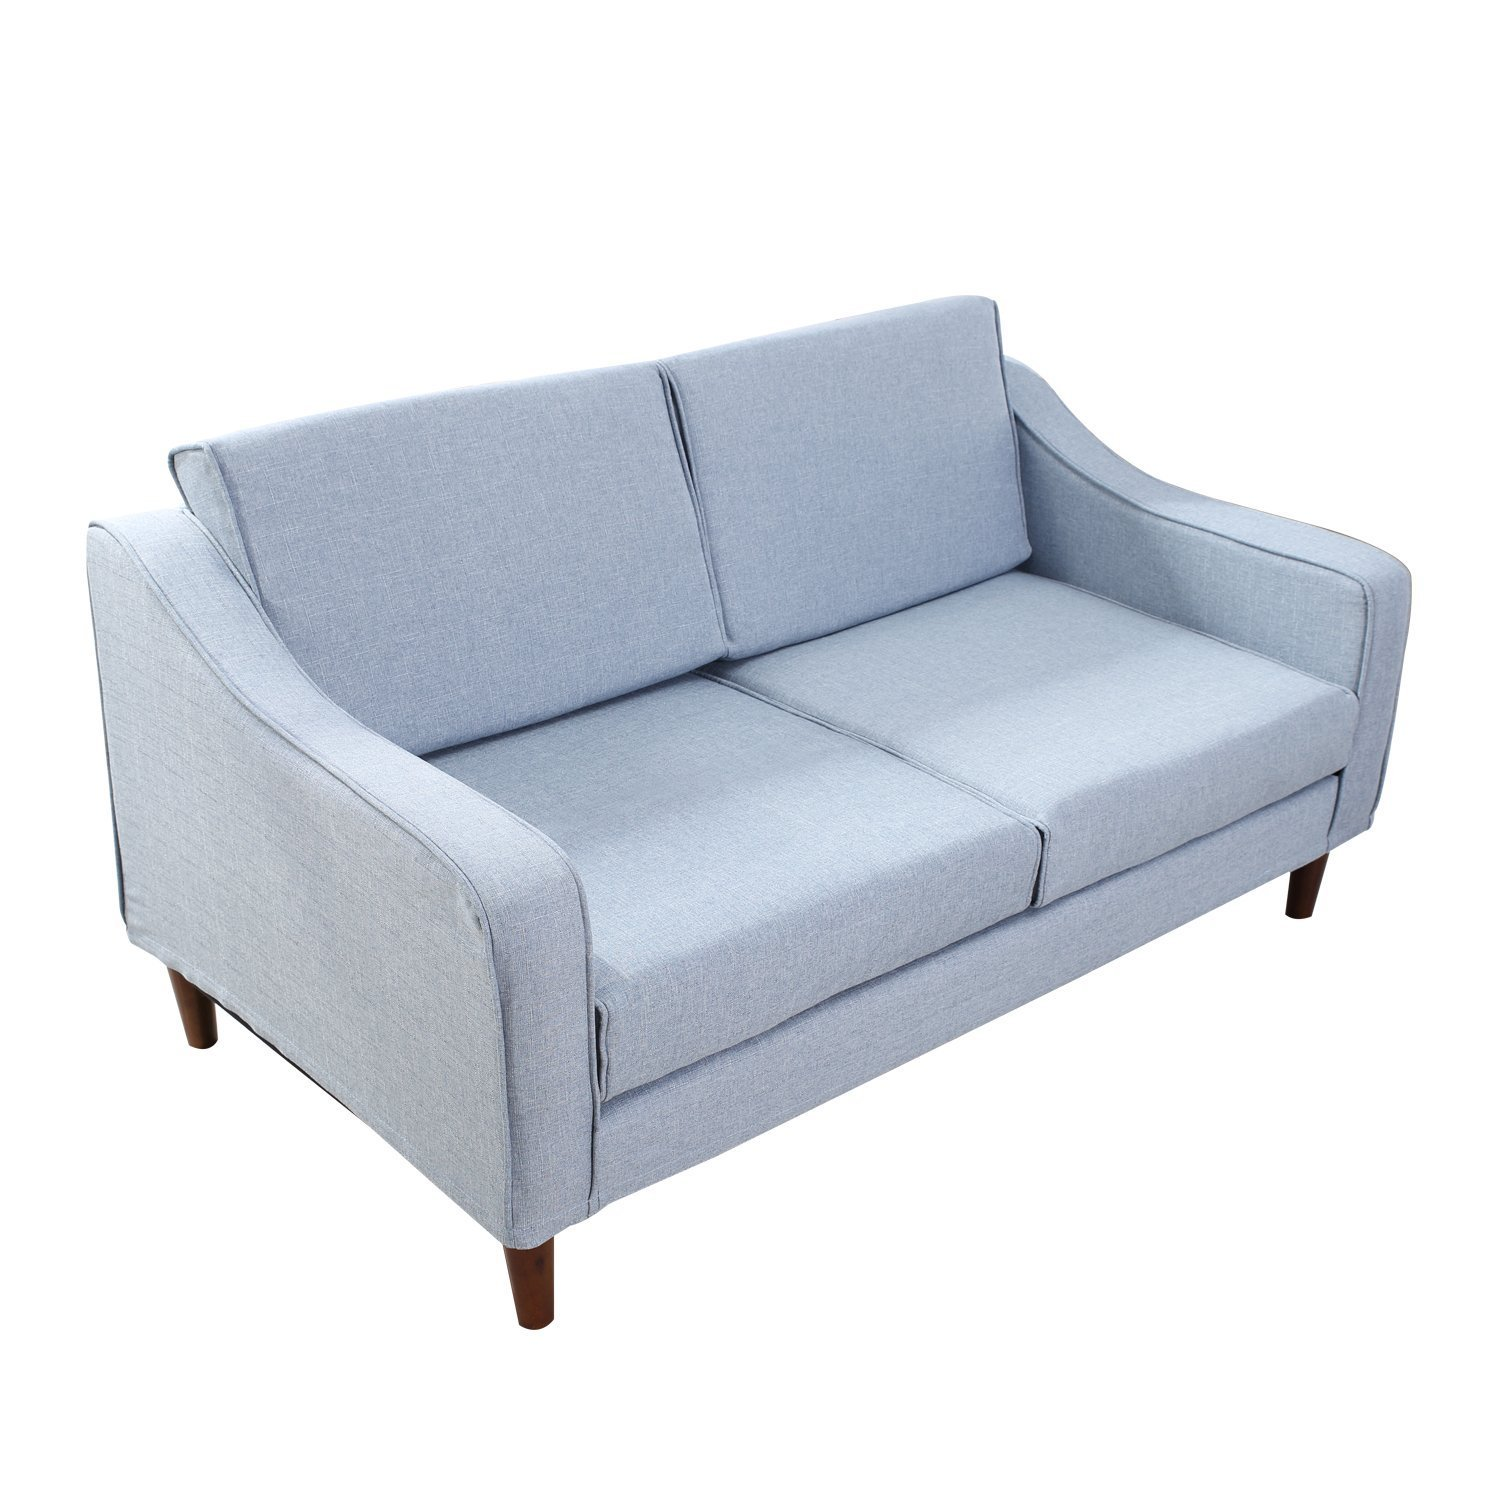 Amazing couch slipcovers jysk sofas for Chaise jysk